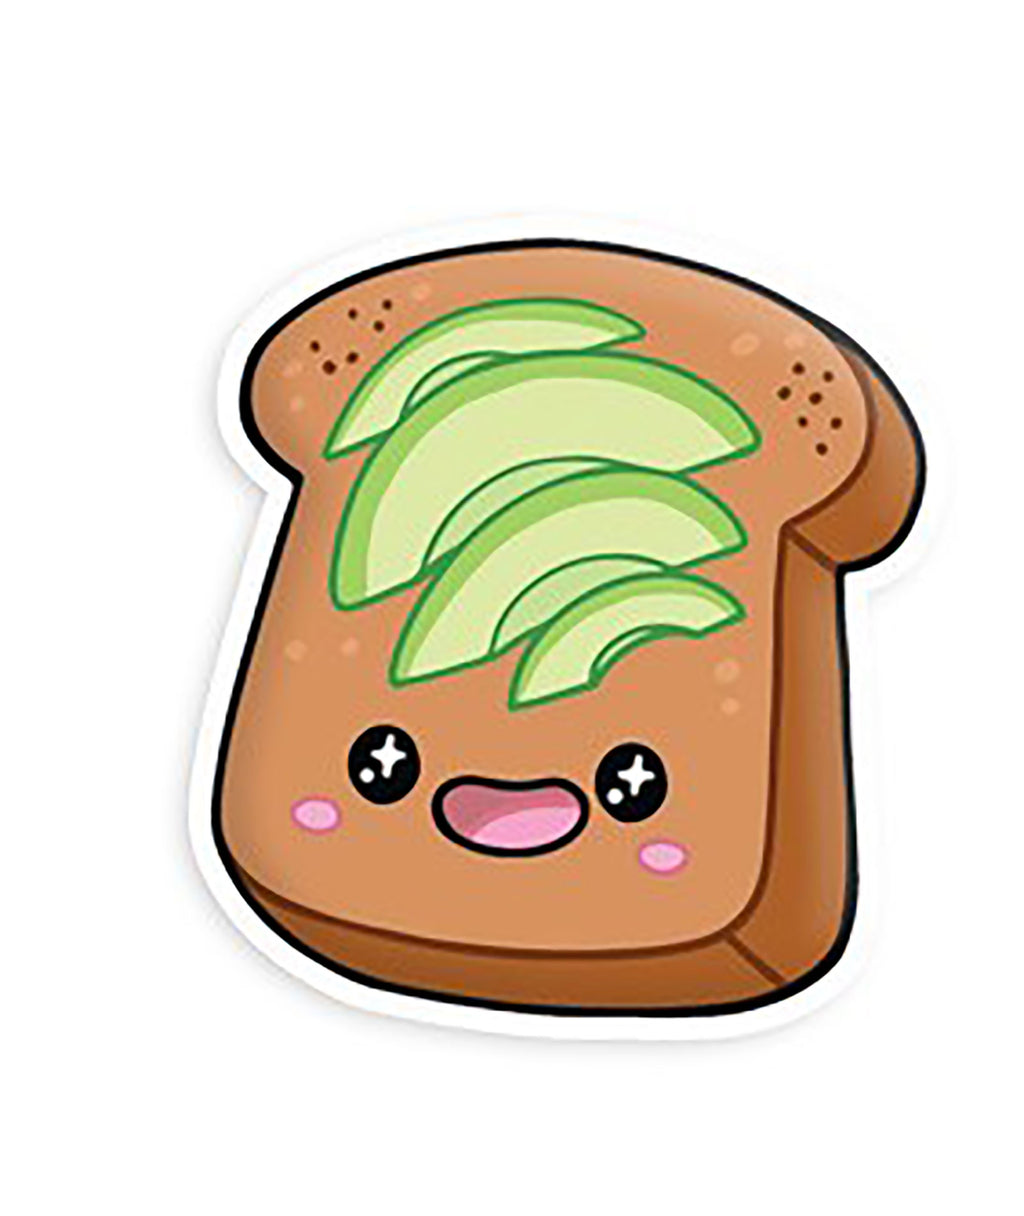 Squishable Vinyl Sticker Avocado Toast